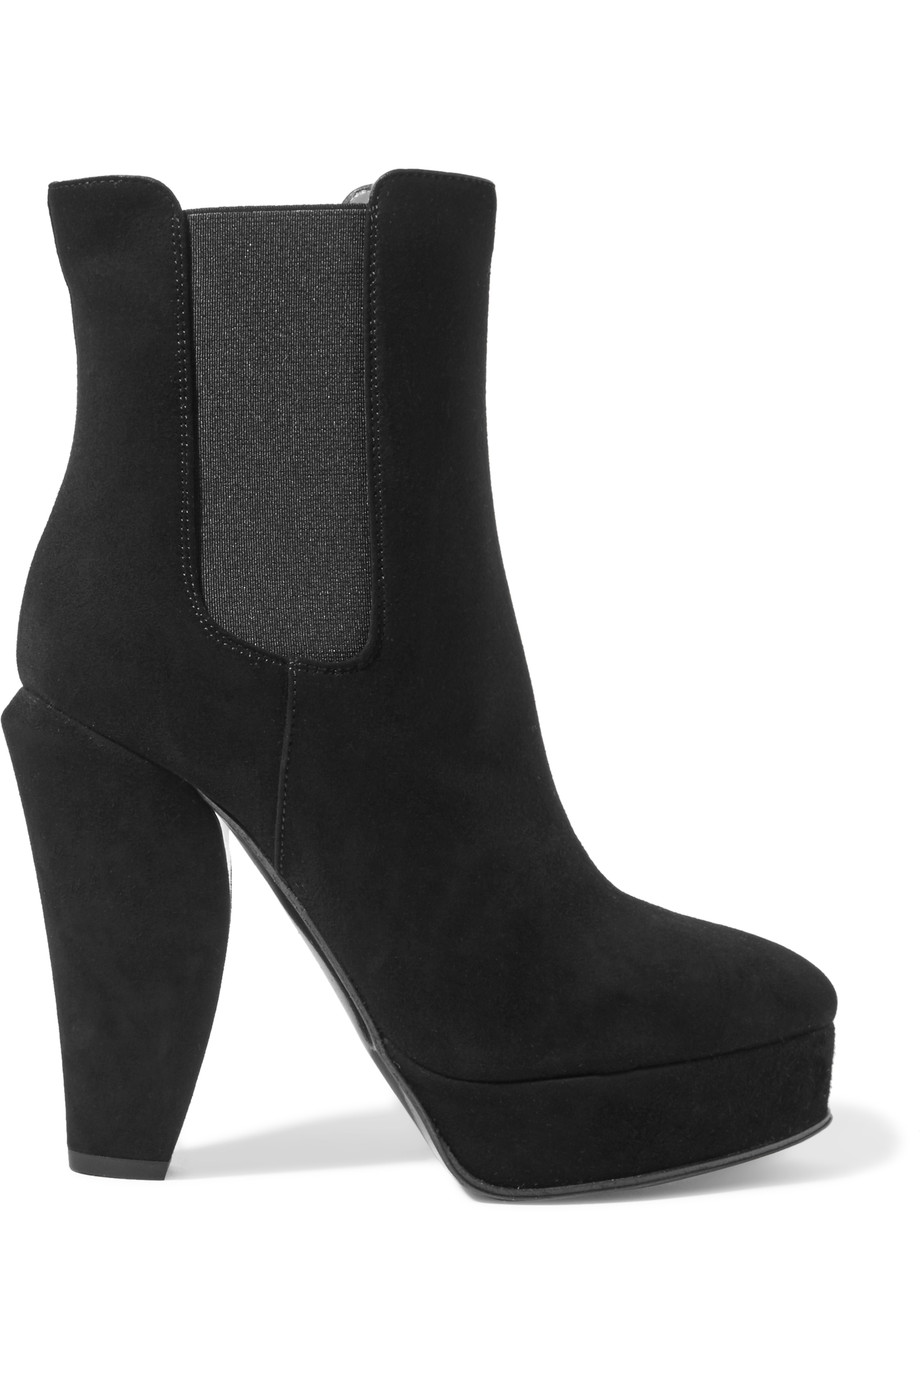 Marni Suedes Suede ankle boots